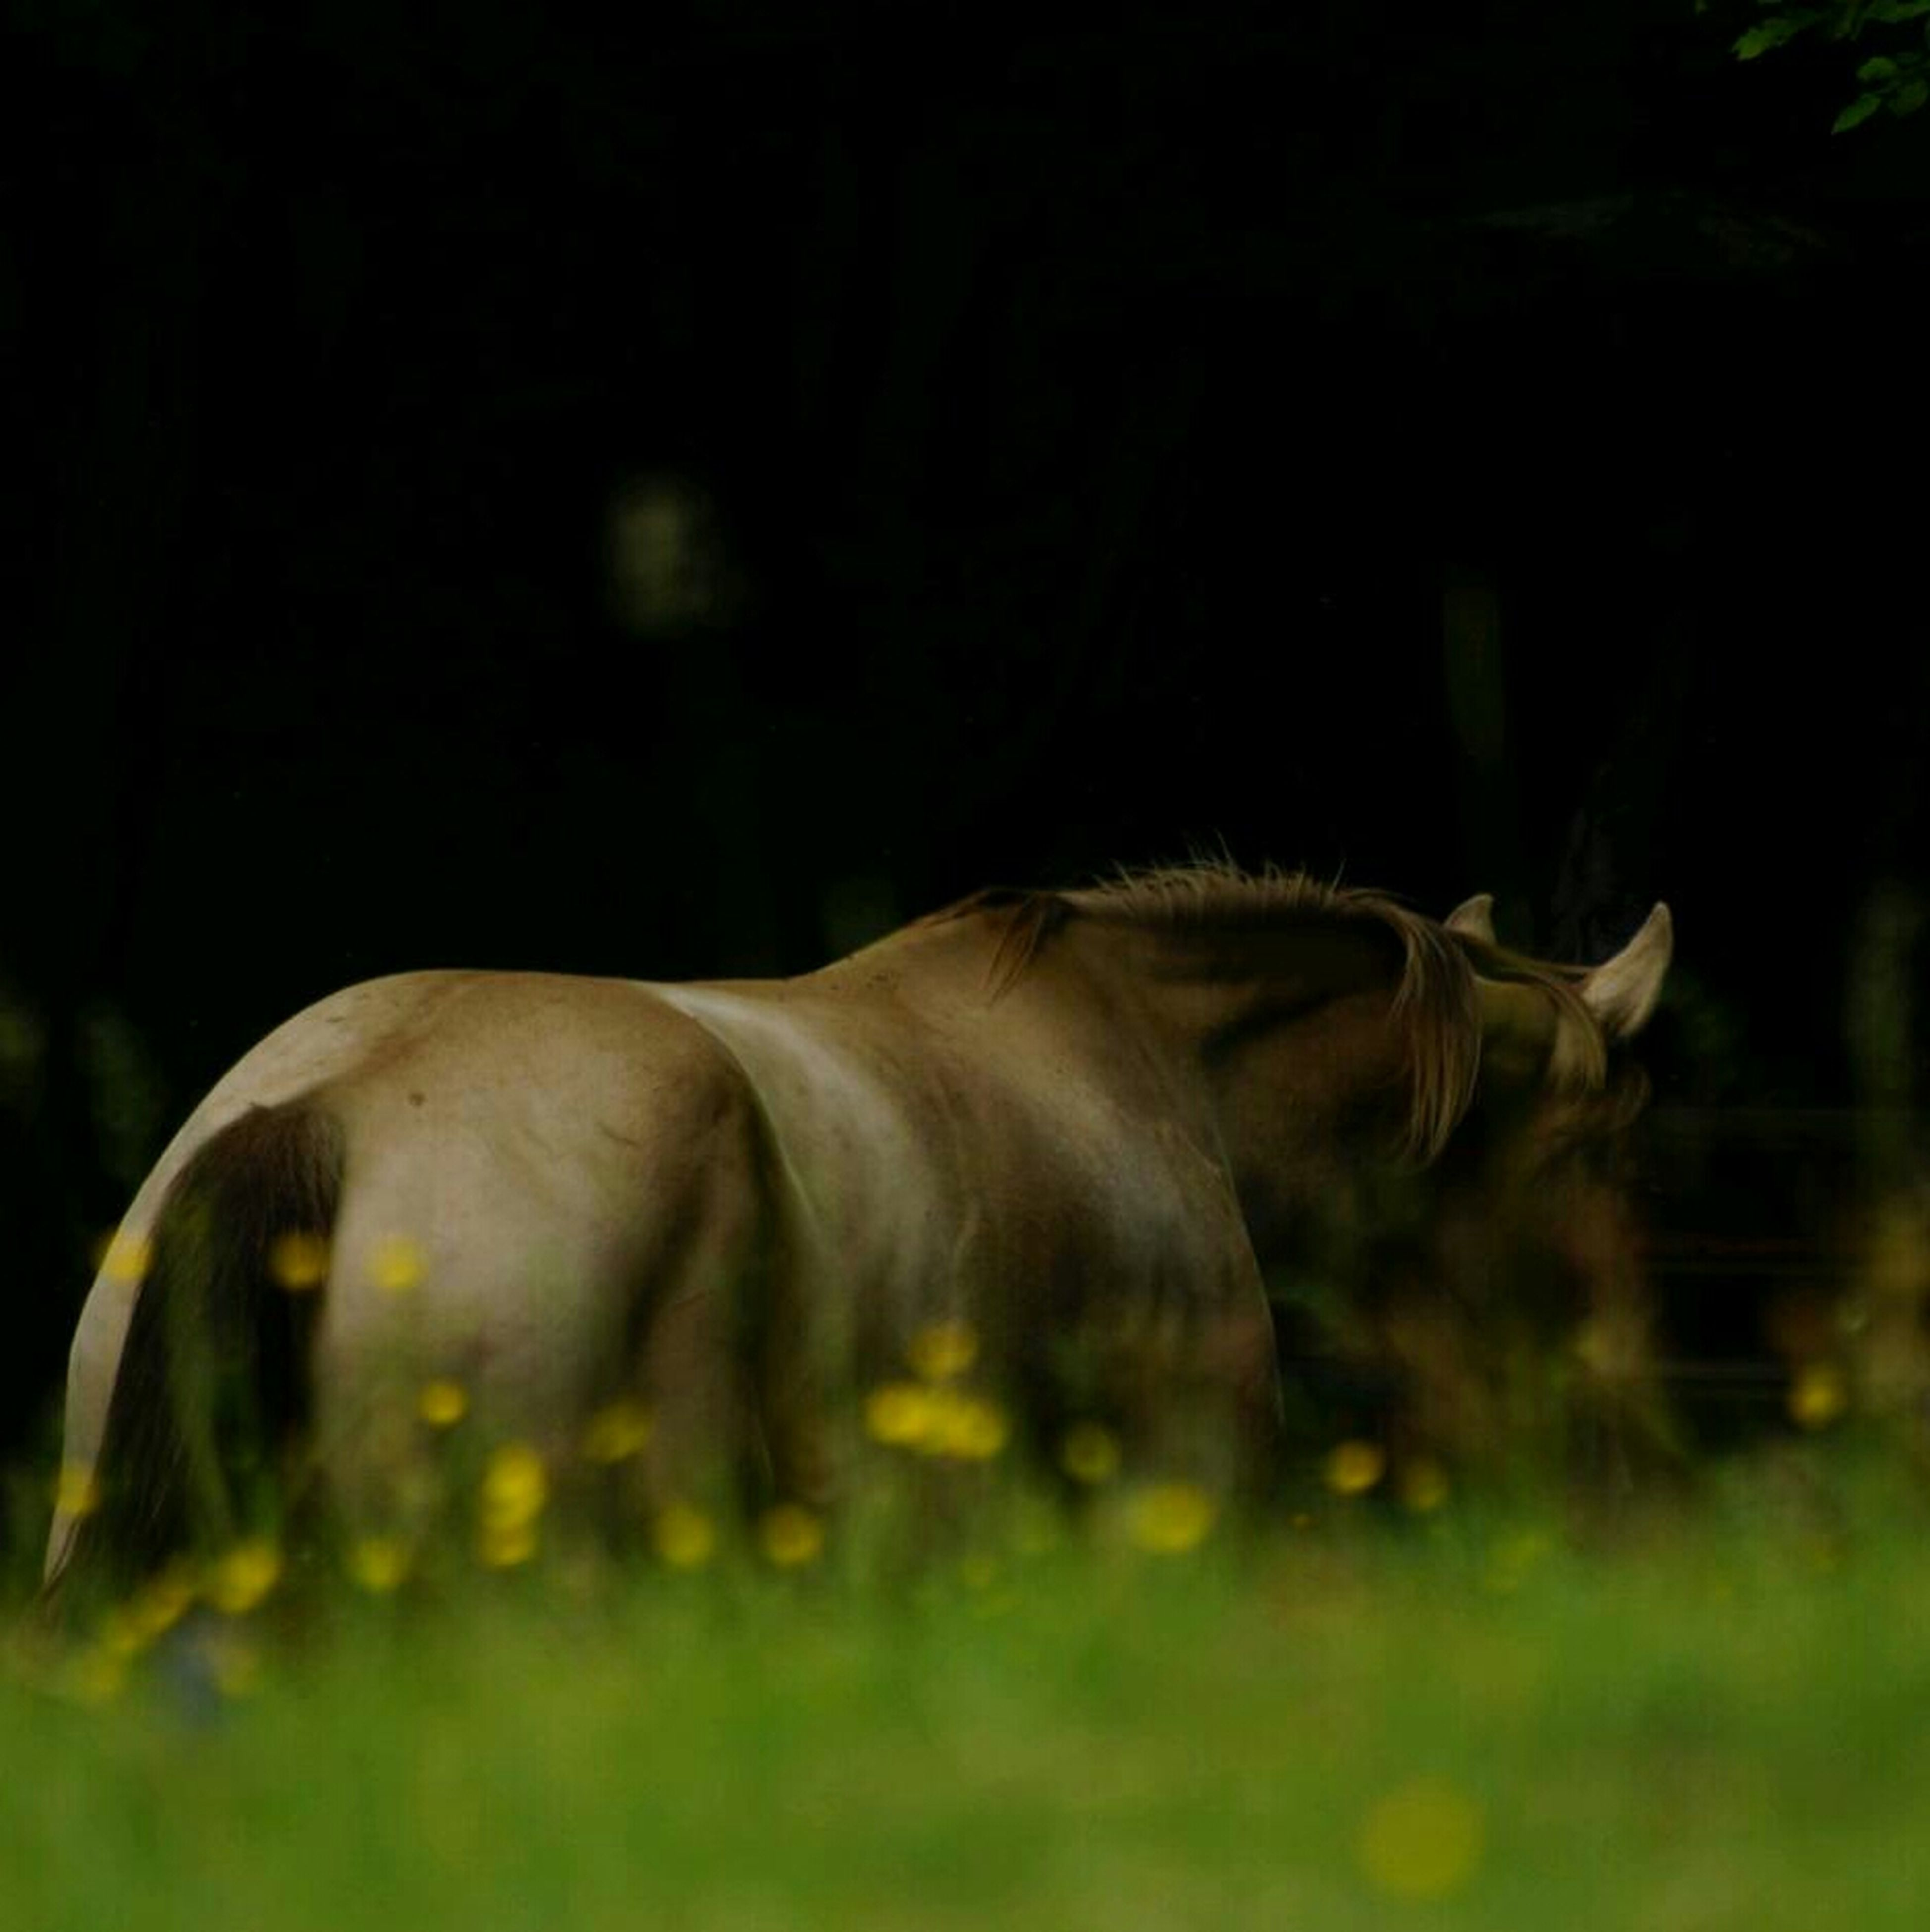 animal themes, one animal, mammal, domestic animals, grass, field, side view, animals in the wild, wildlife, selective focus, green color, nature, no people, zoology, plant, outdoors, night, relaxation, animal head, focus on foreground